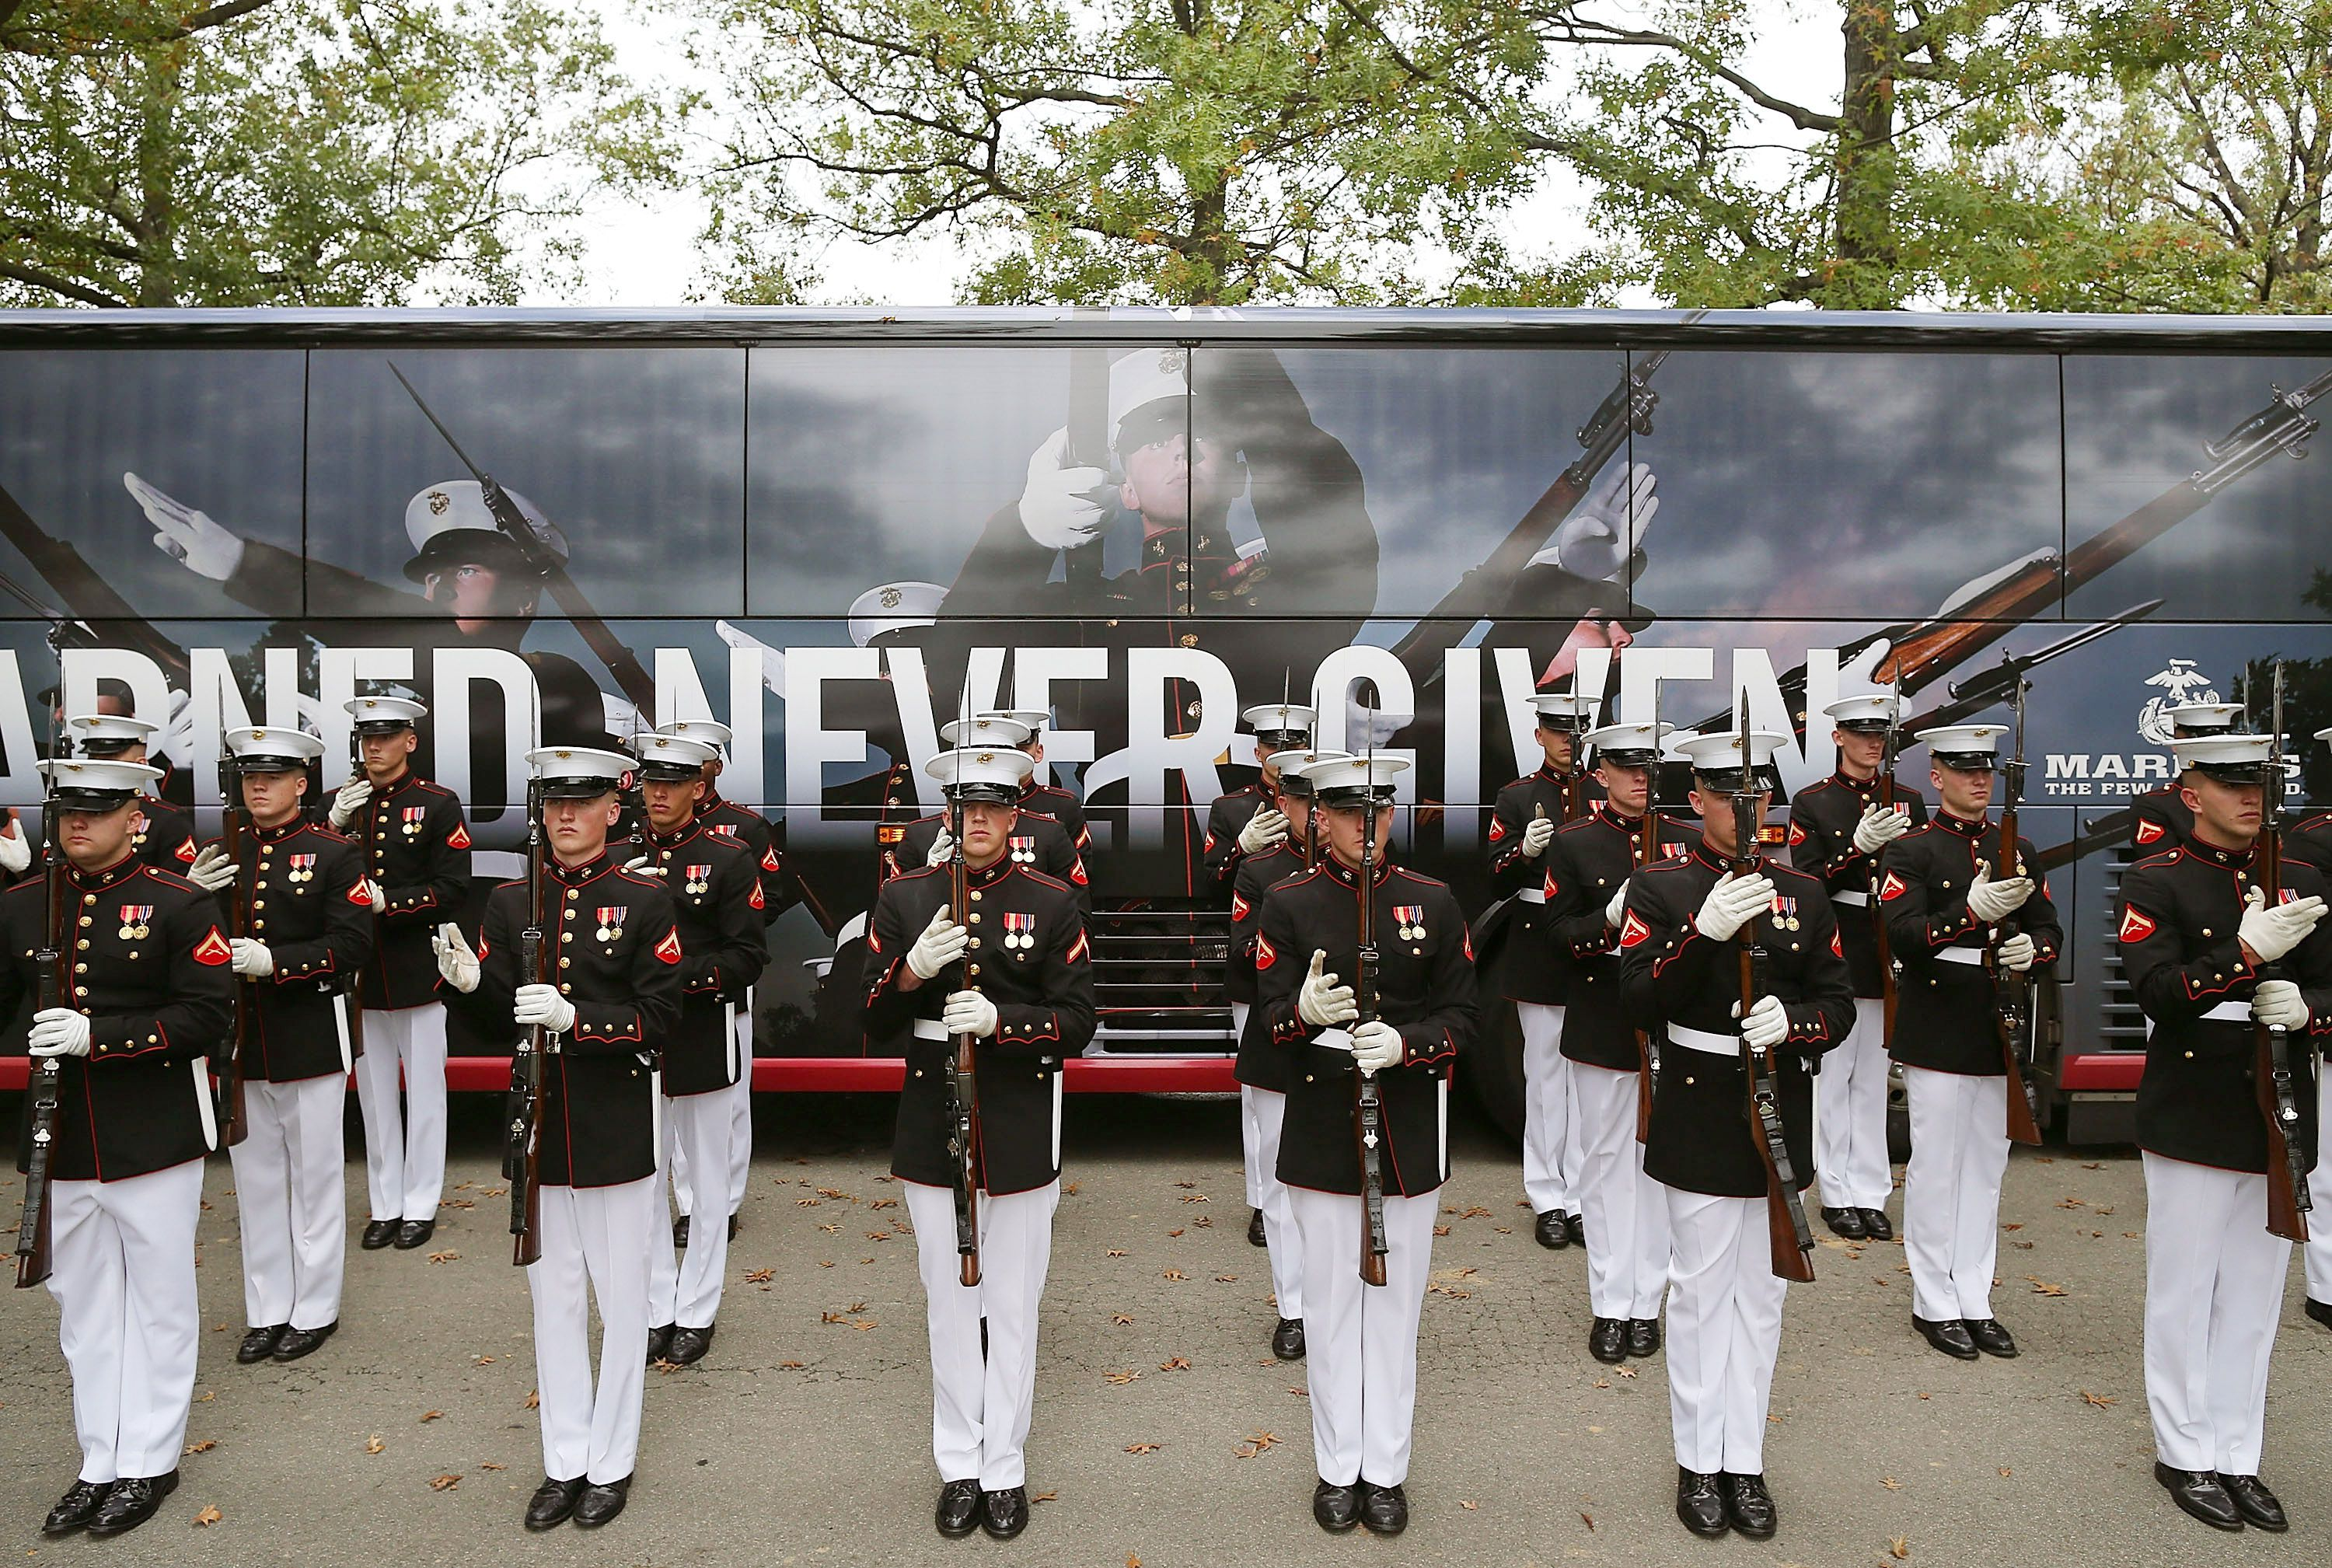 Burial Service For 7 Marines Killed During WWII Held At Arlington Cemetery